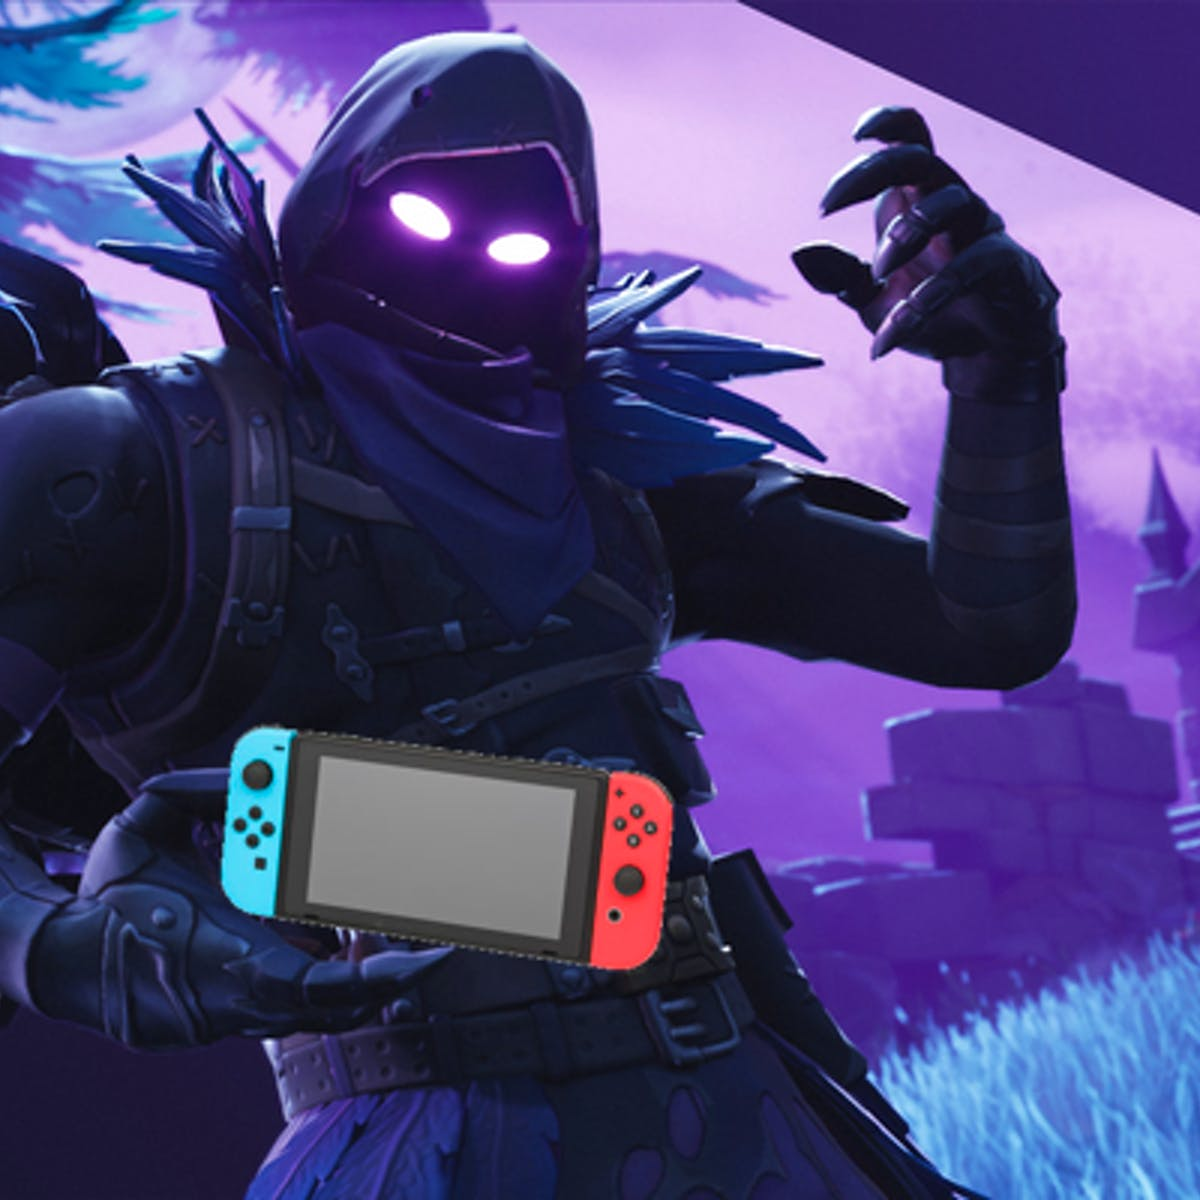 Fortnite' Switch Voice Chat: You Don't Need the Annoying Switch